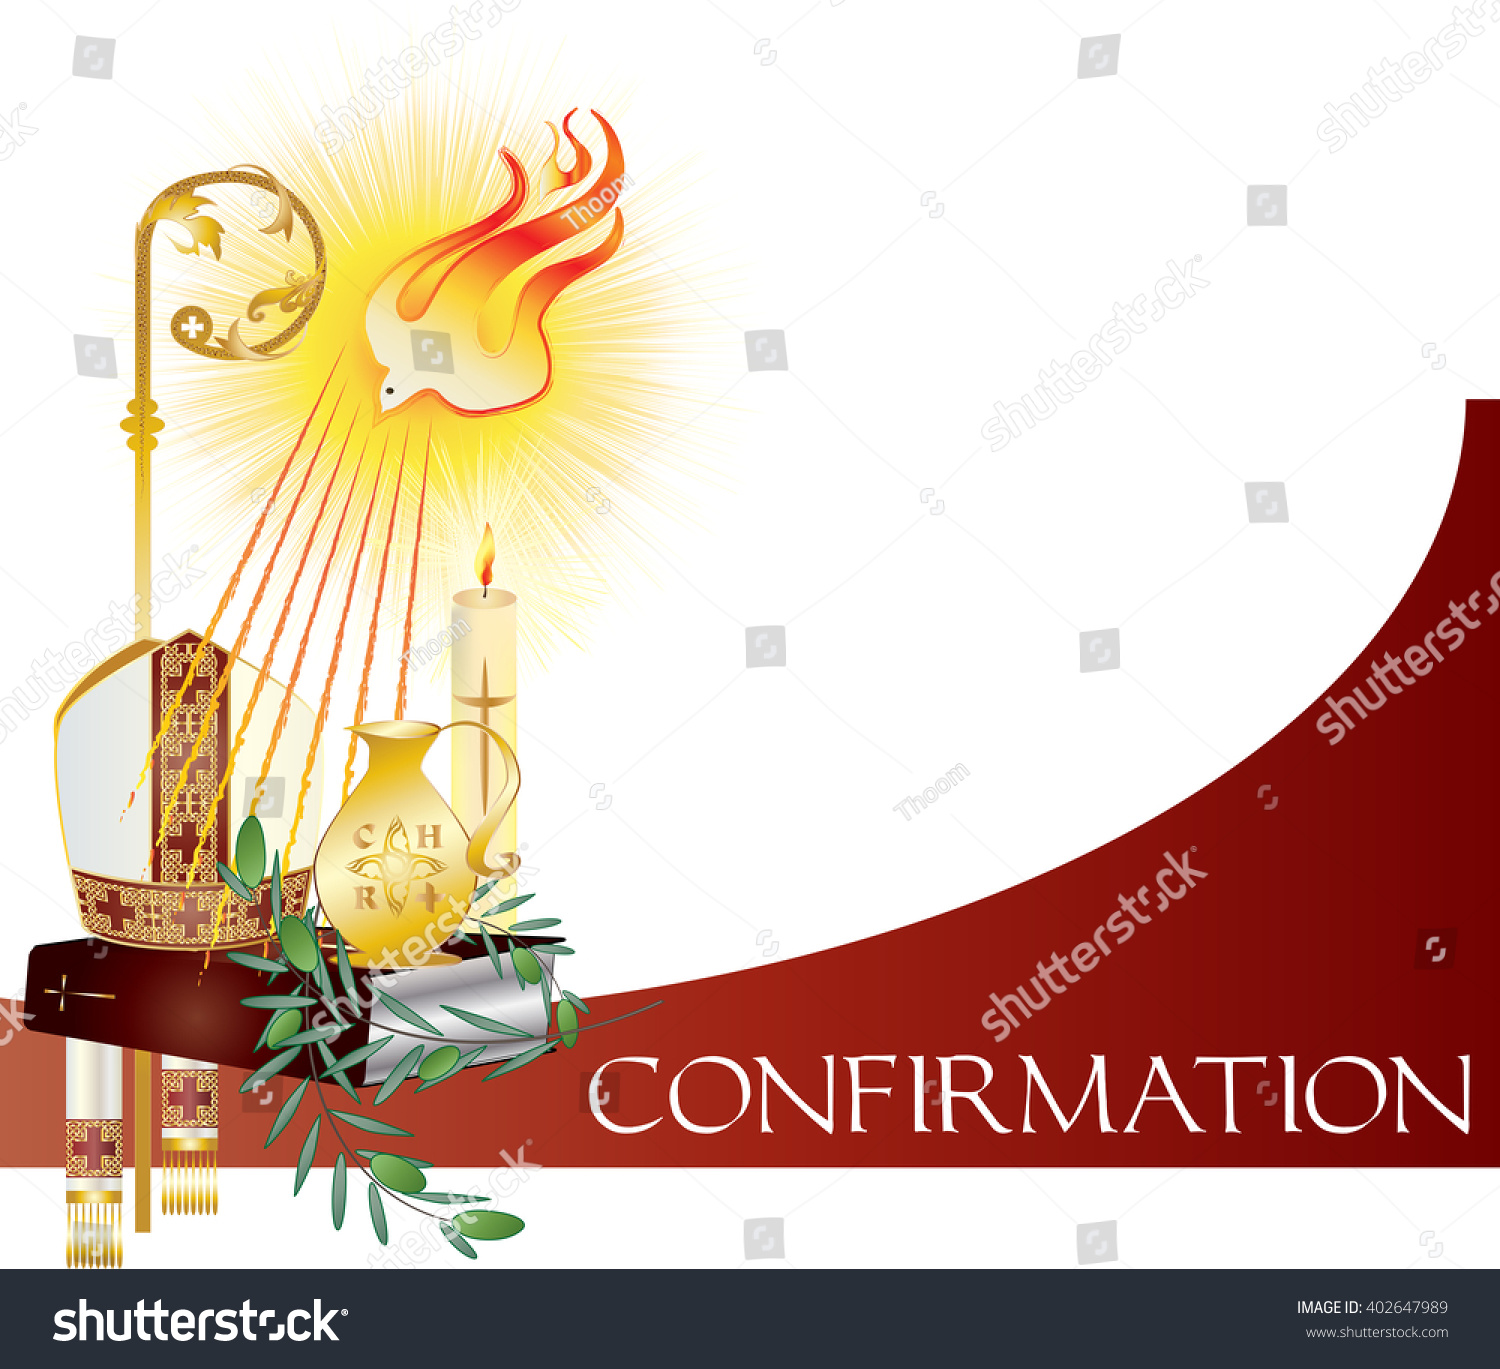 confirmation sacrament What is the sacrament of confirmation learn about confirmation, its history and development in the catholic church, and its theology at loyola press.